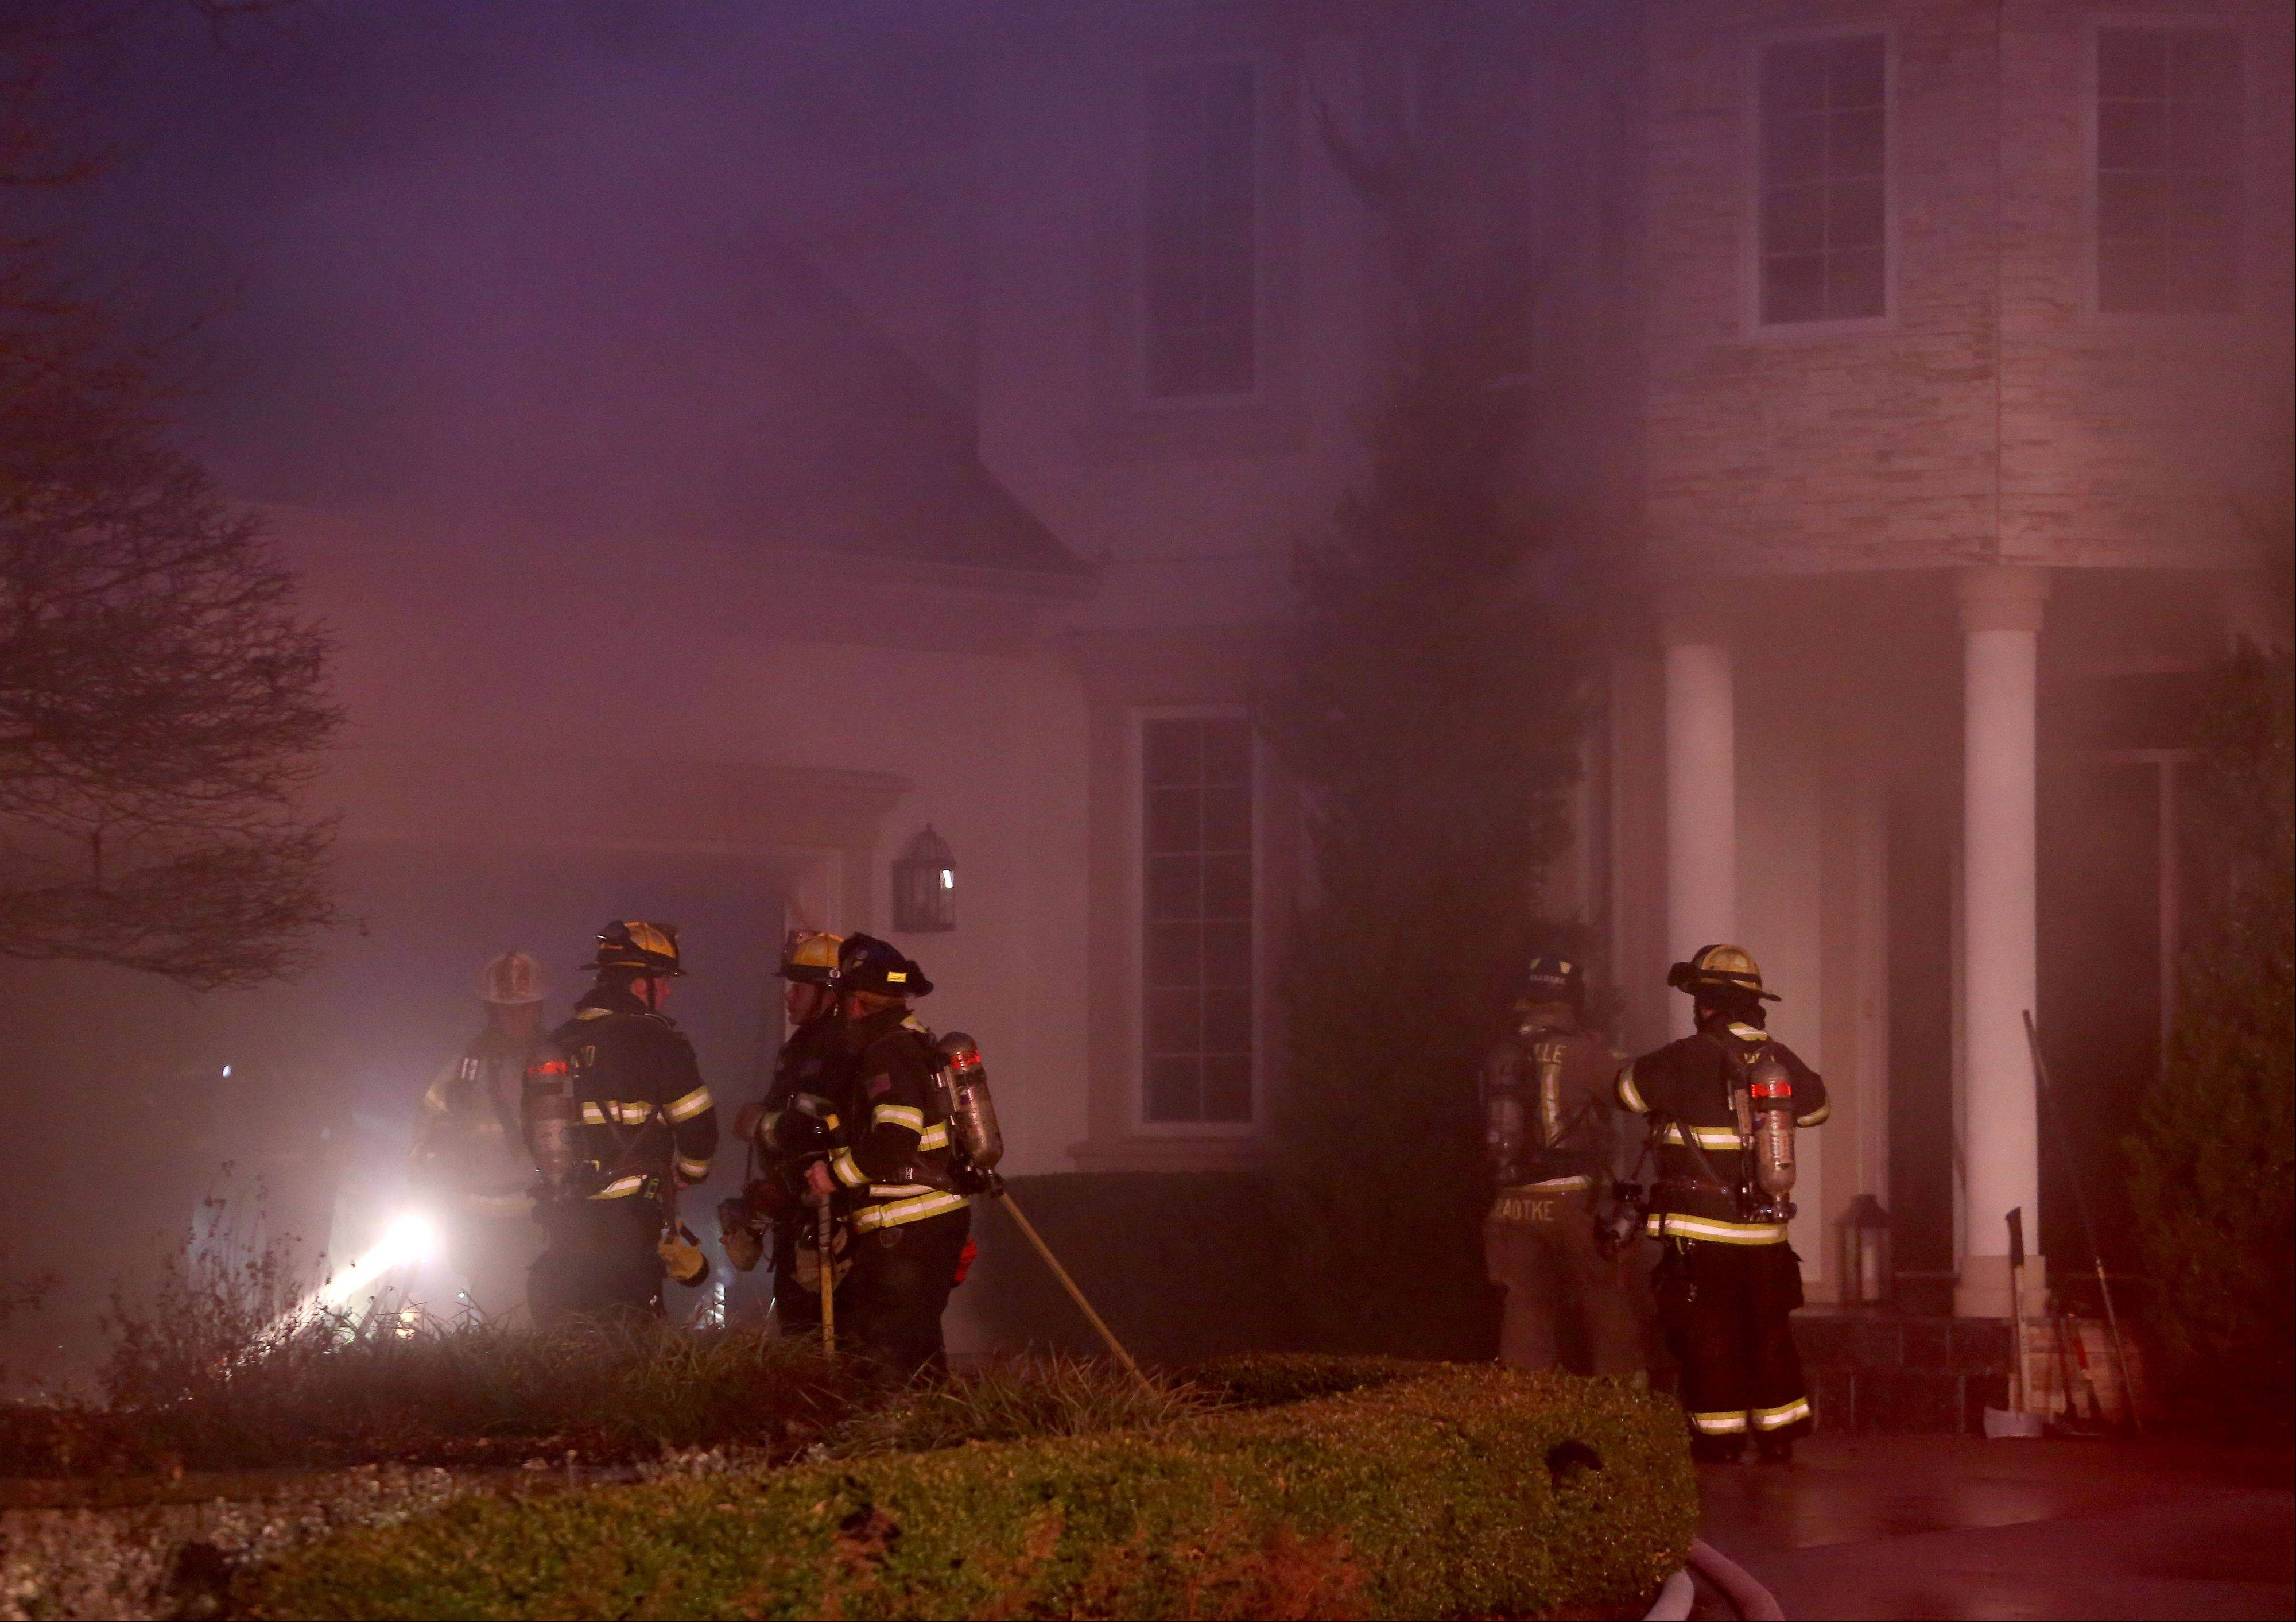 Three firefighters suffered minor injuries Tuesday night while battling a two-alarm fire that caused severe damage to a house in the Steeple Run neighborhood near Naperville. Authorities said the blaze started in the basement and spread rapidly all the way to the attic.